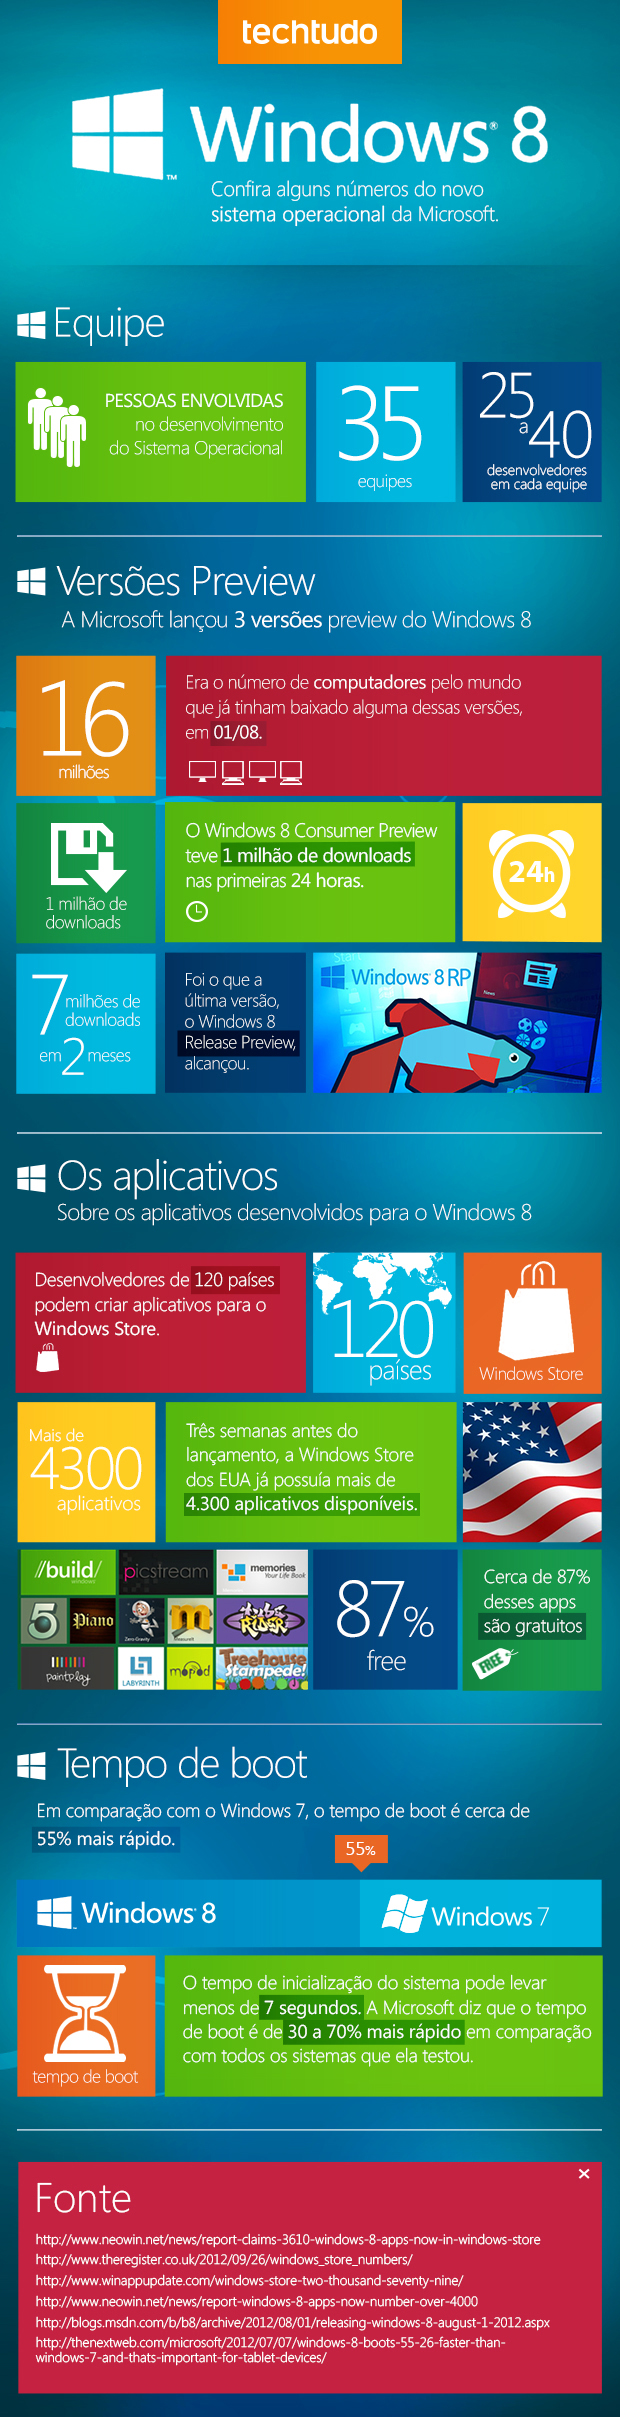 Dados do Windows 8 (Foto: TechTudo)